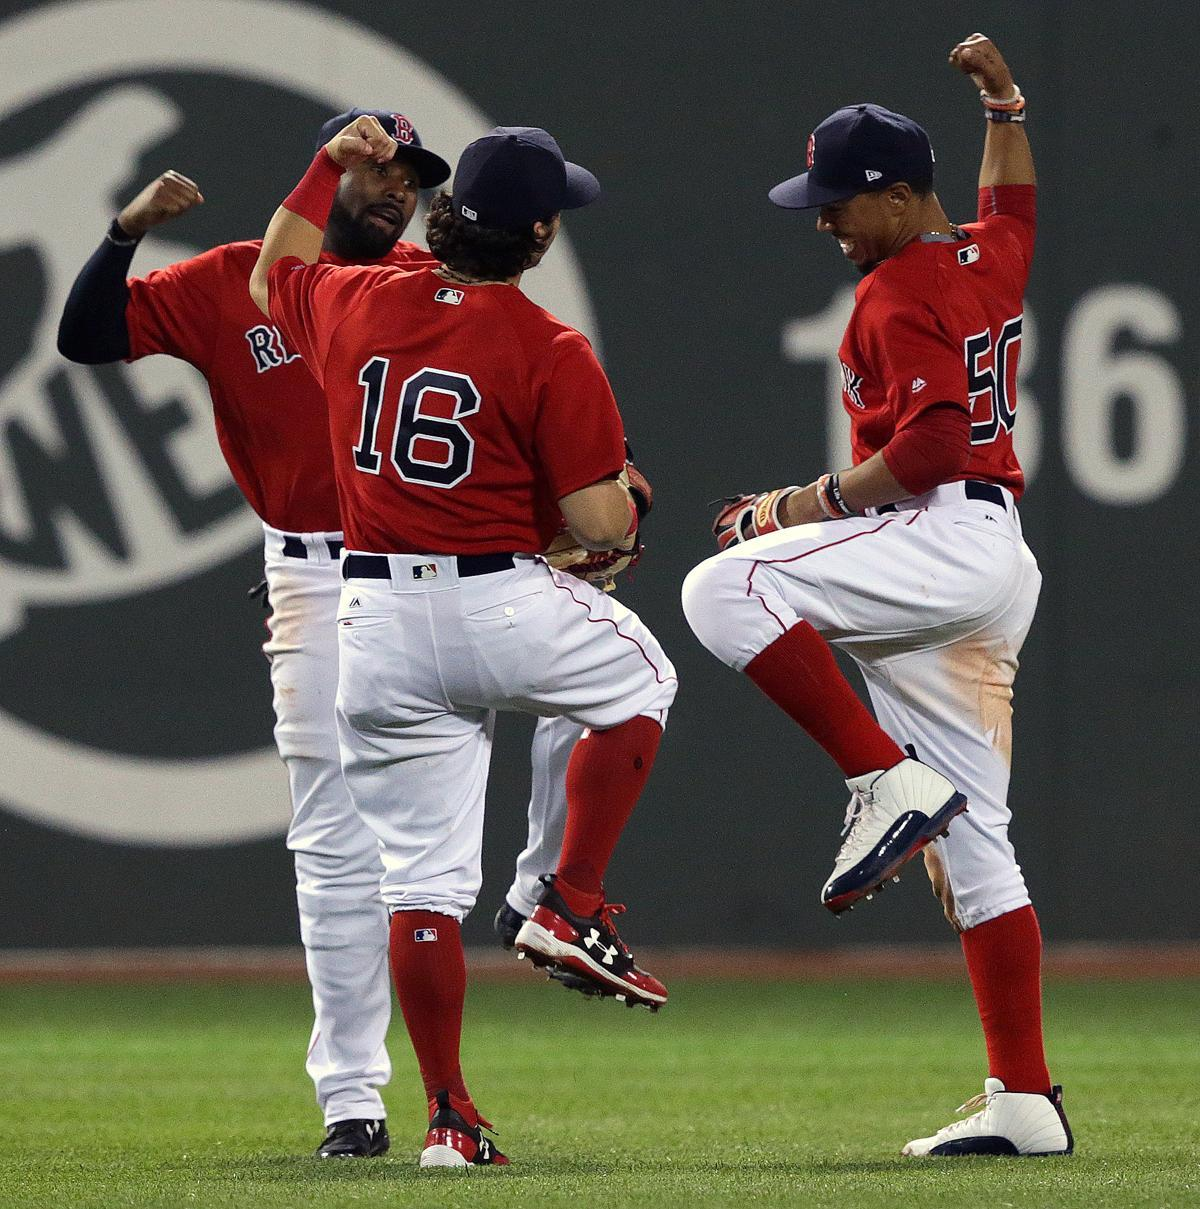 Lineup changes give Red Sox a lift in victory over Cubs